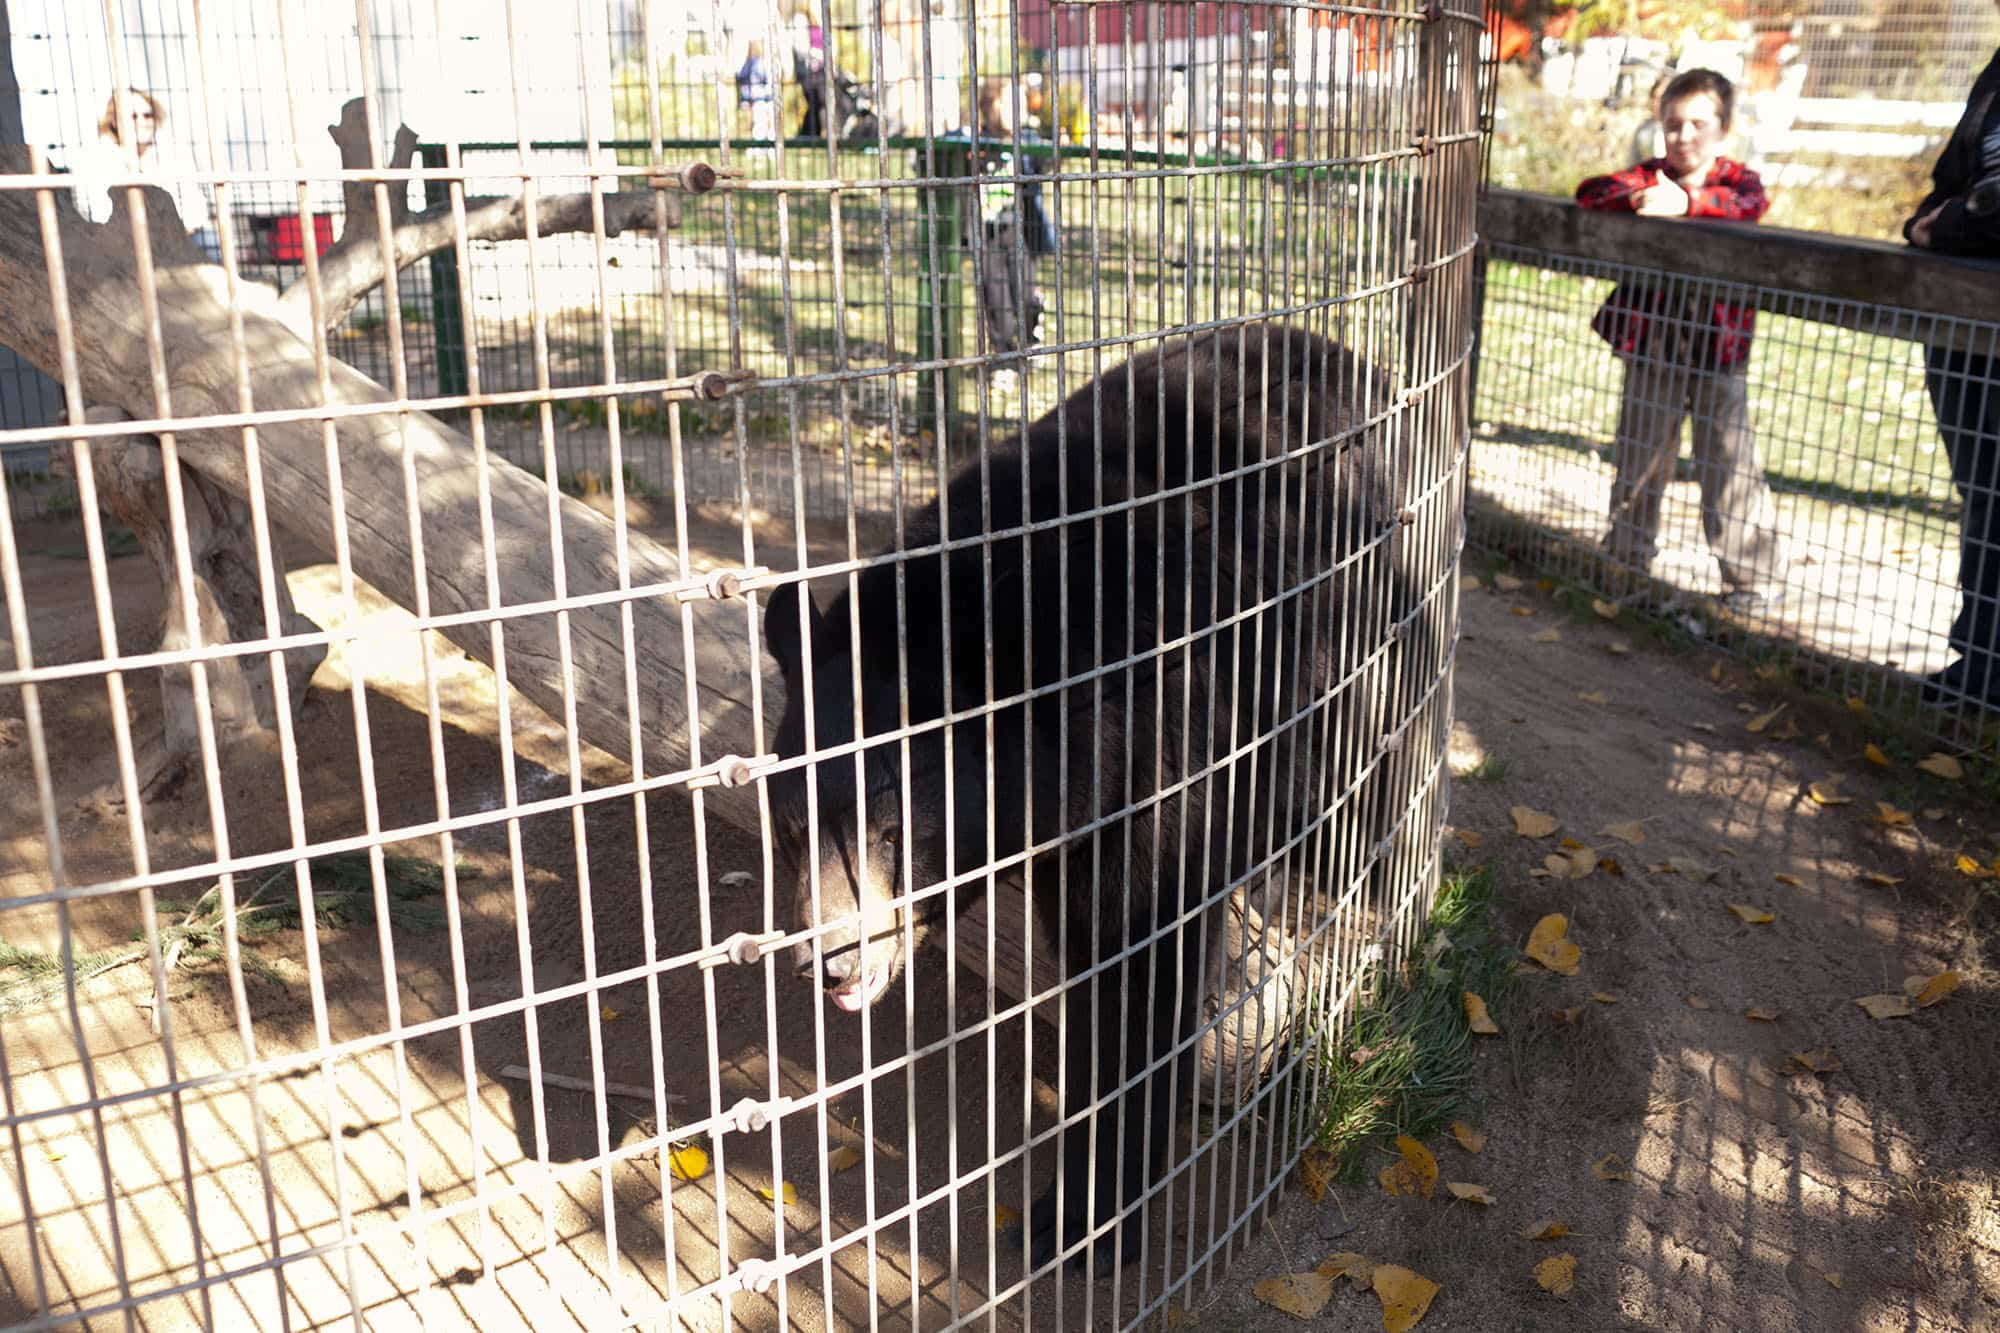 Bear at Bear Den Zoo and Petting Farm in Wisconsin